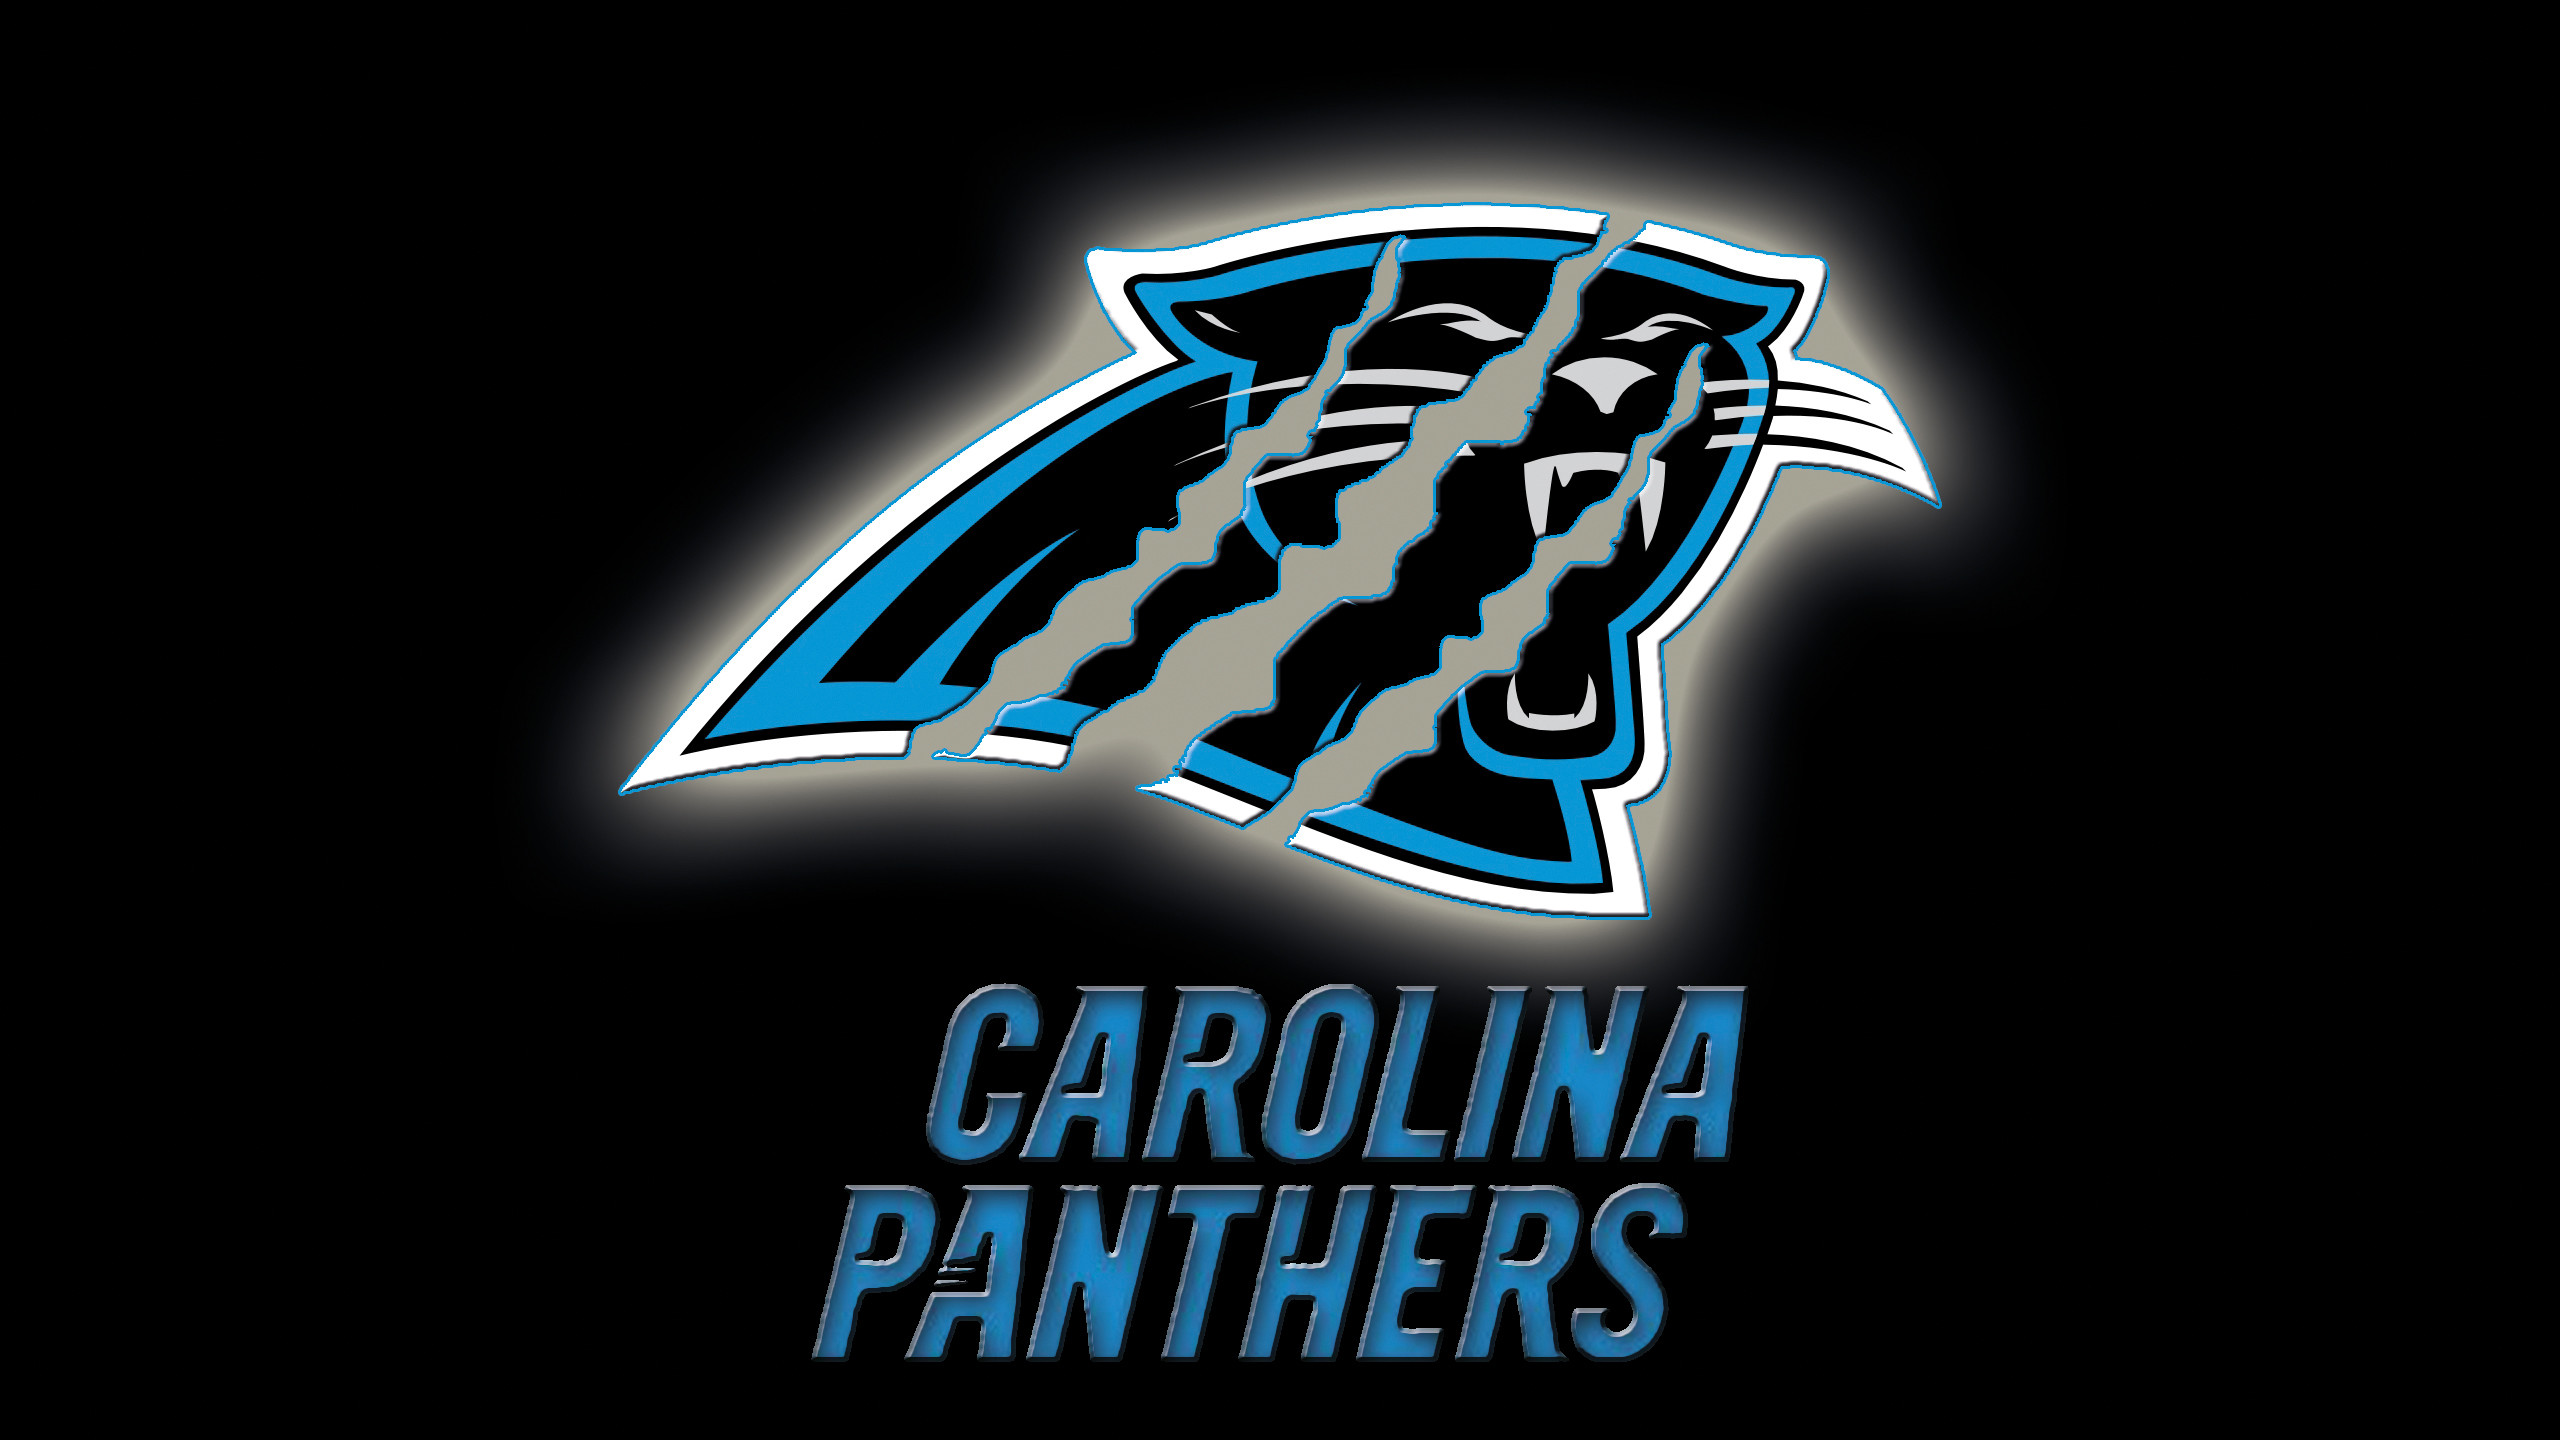 2560x1440 Excellent Carolina Panthers Wallpaper | Full HD Pictures